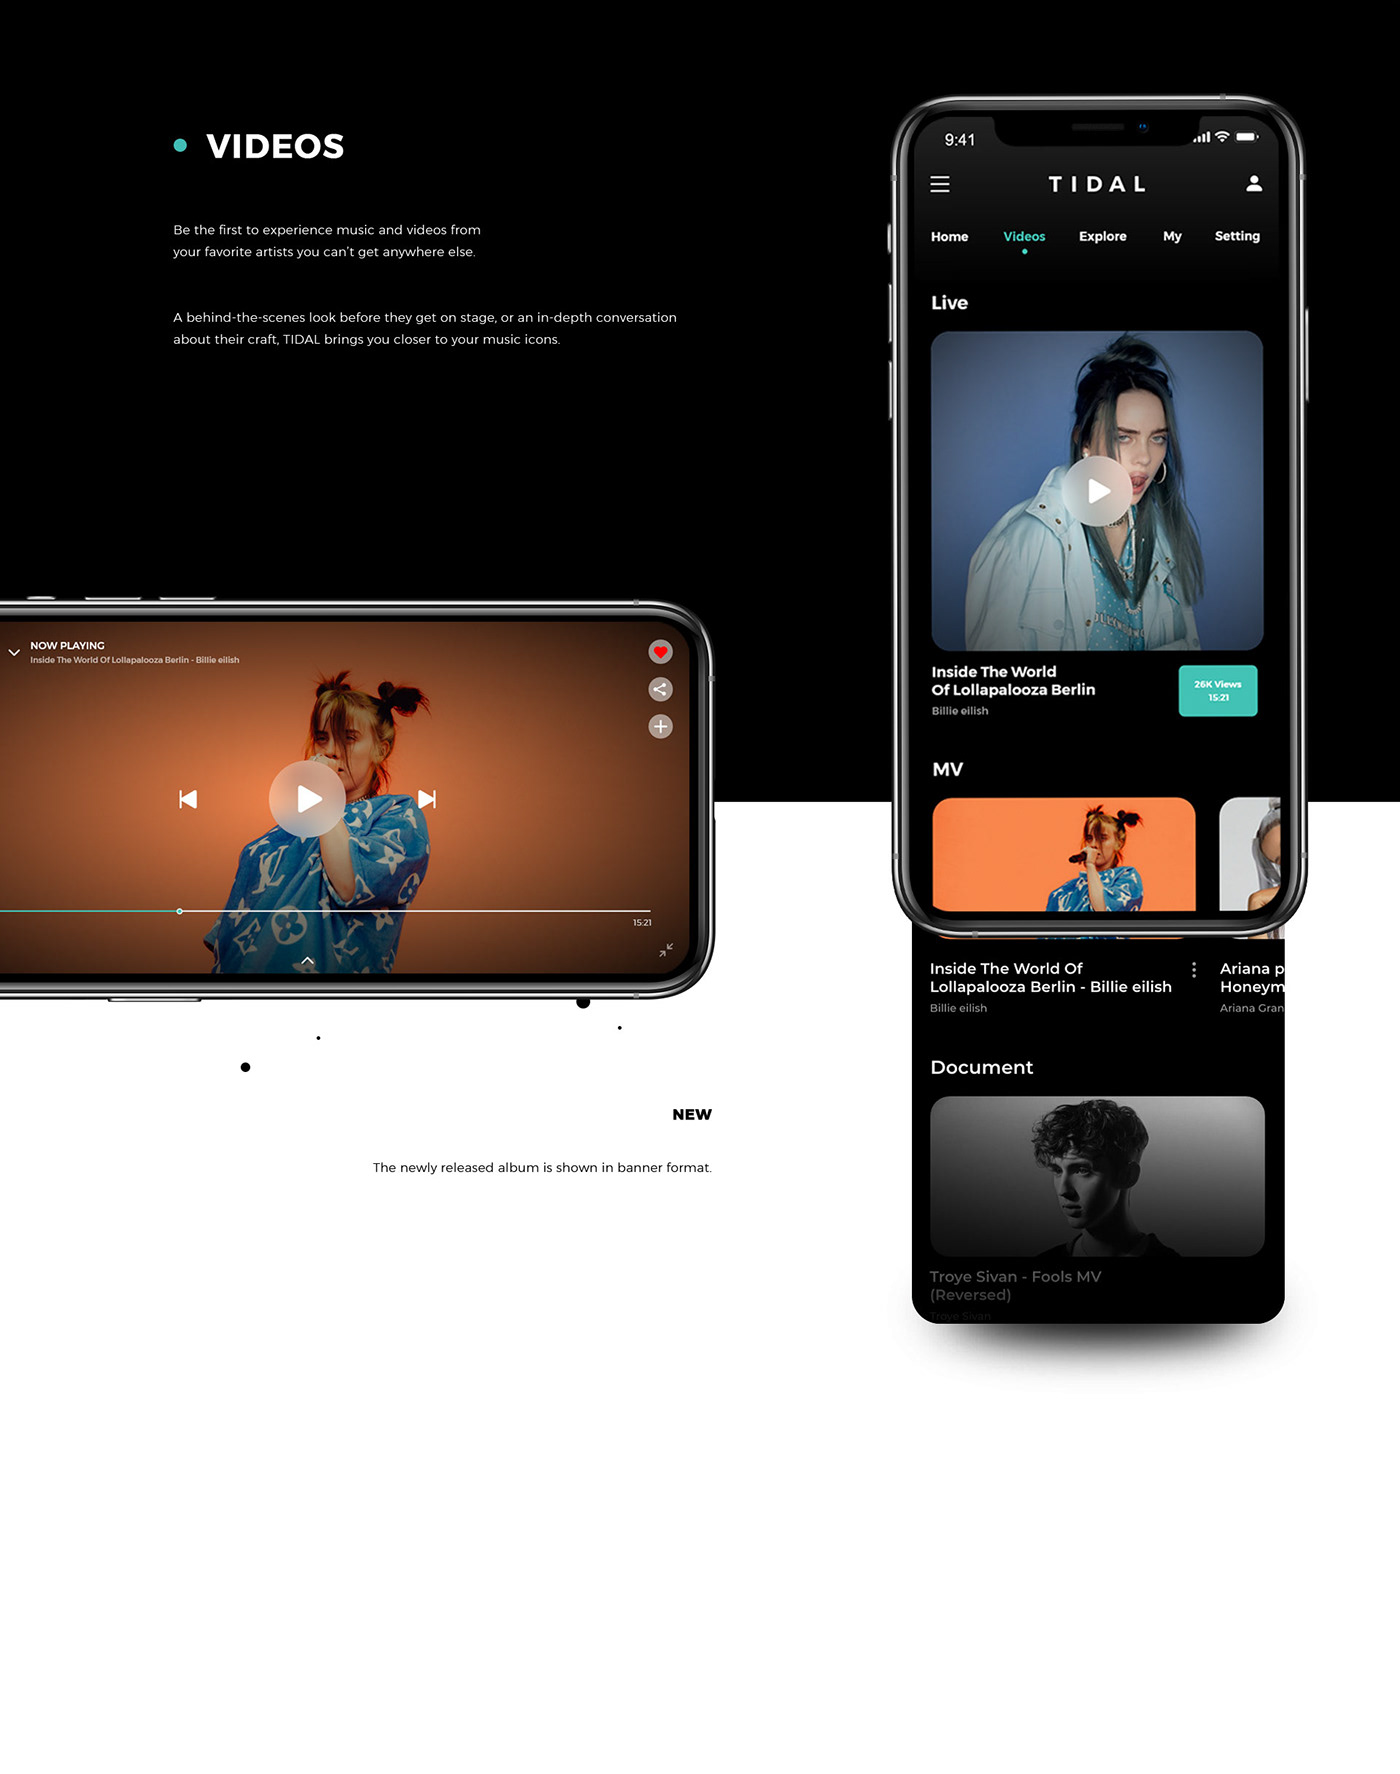 #music,#tidal,app,design,interaction,playlists,Streaming,UI,ux,videos